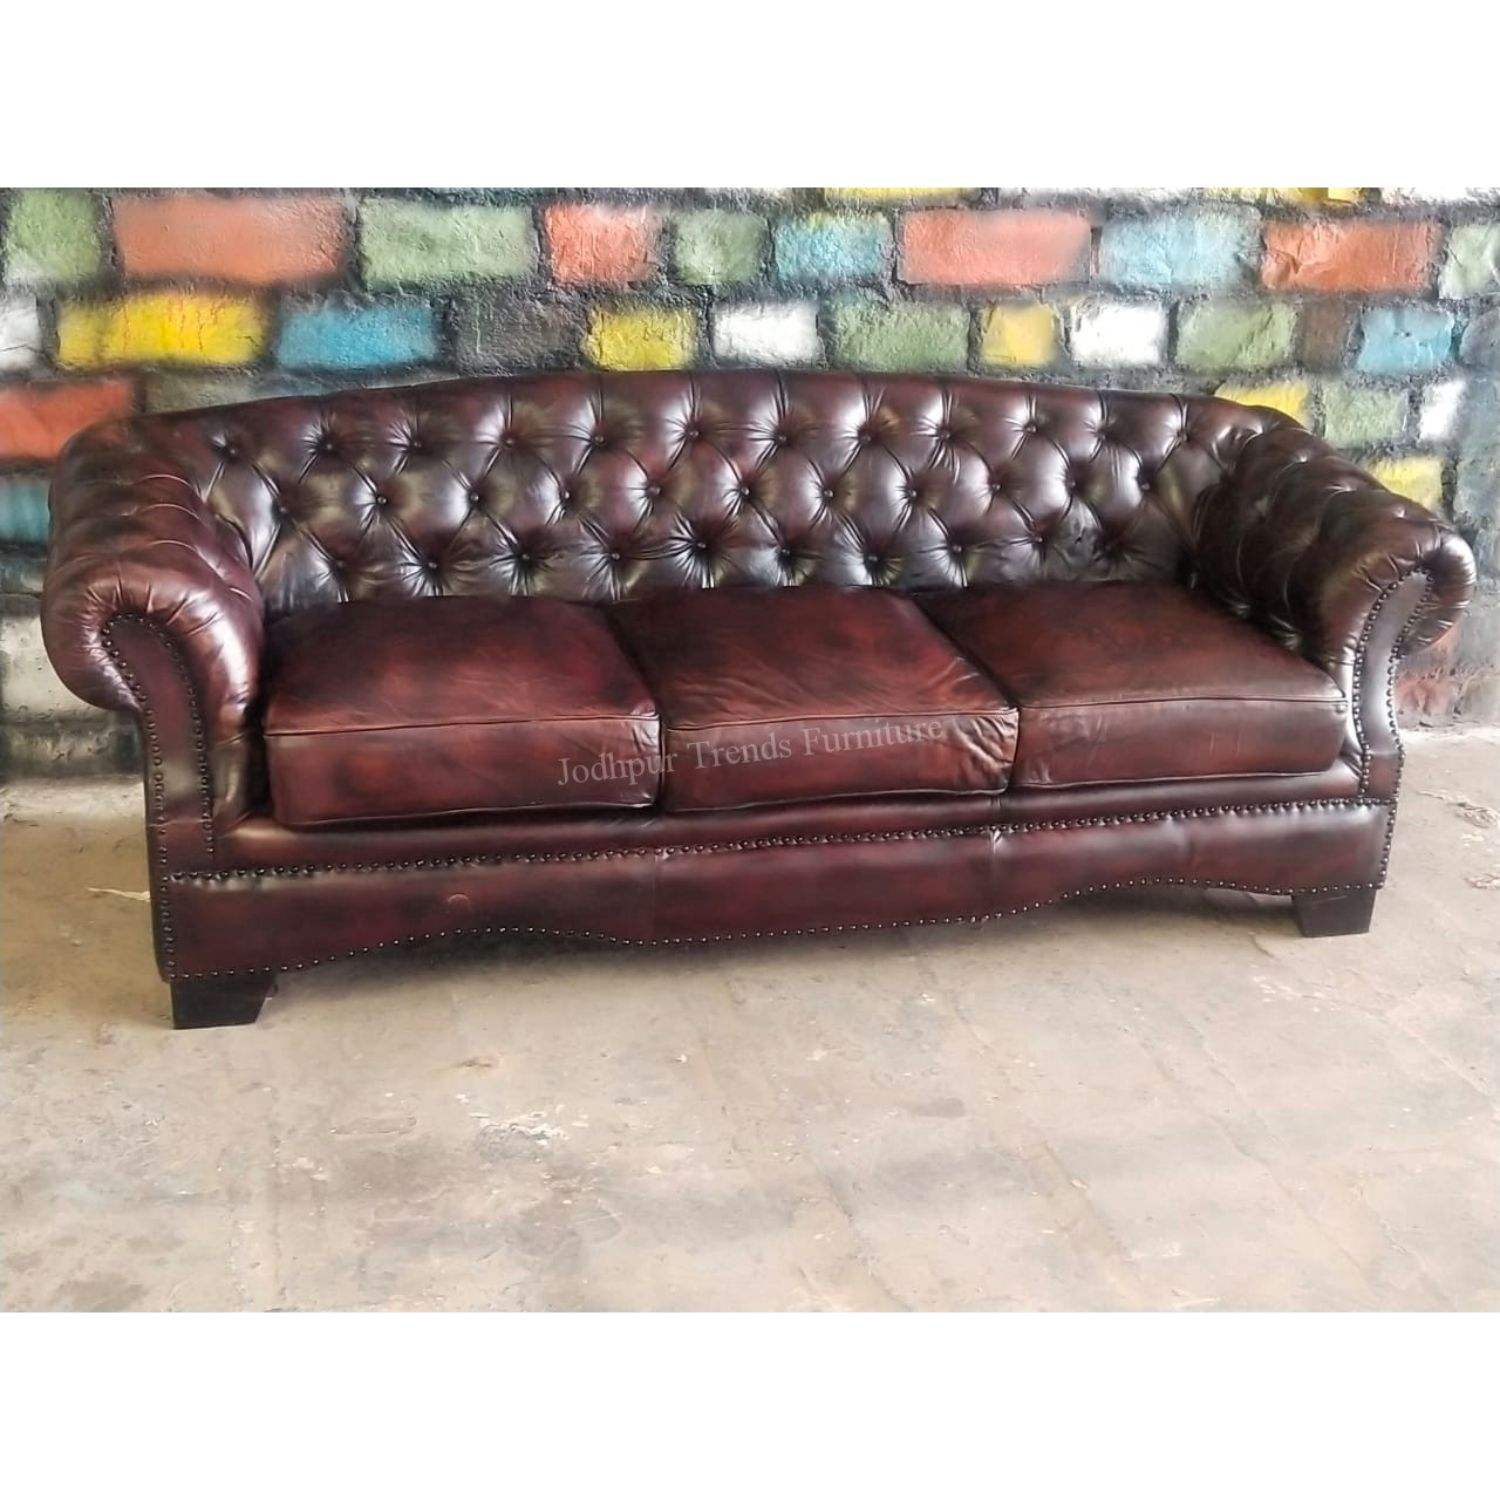 2020 Vintage industrial European styled chesterfield three seater leather sofa for home and hotel use